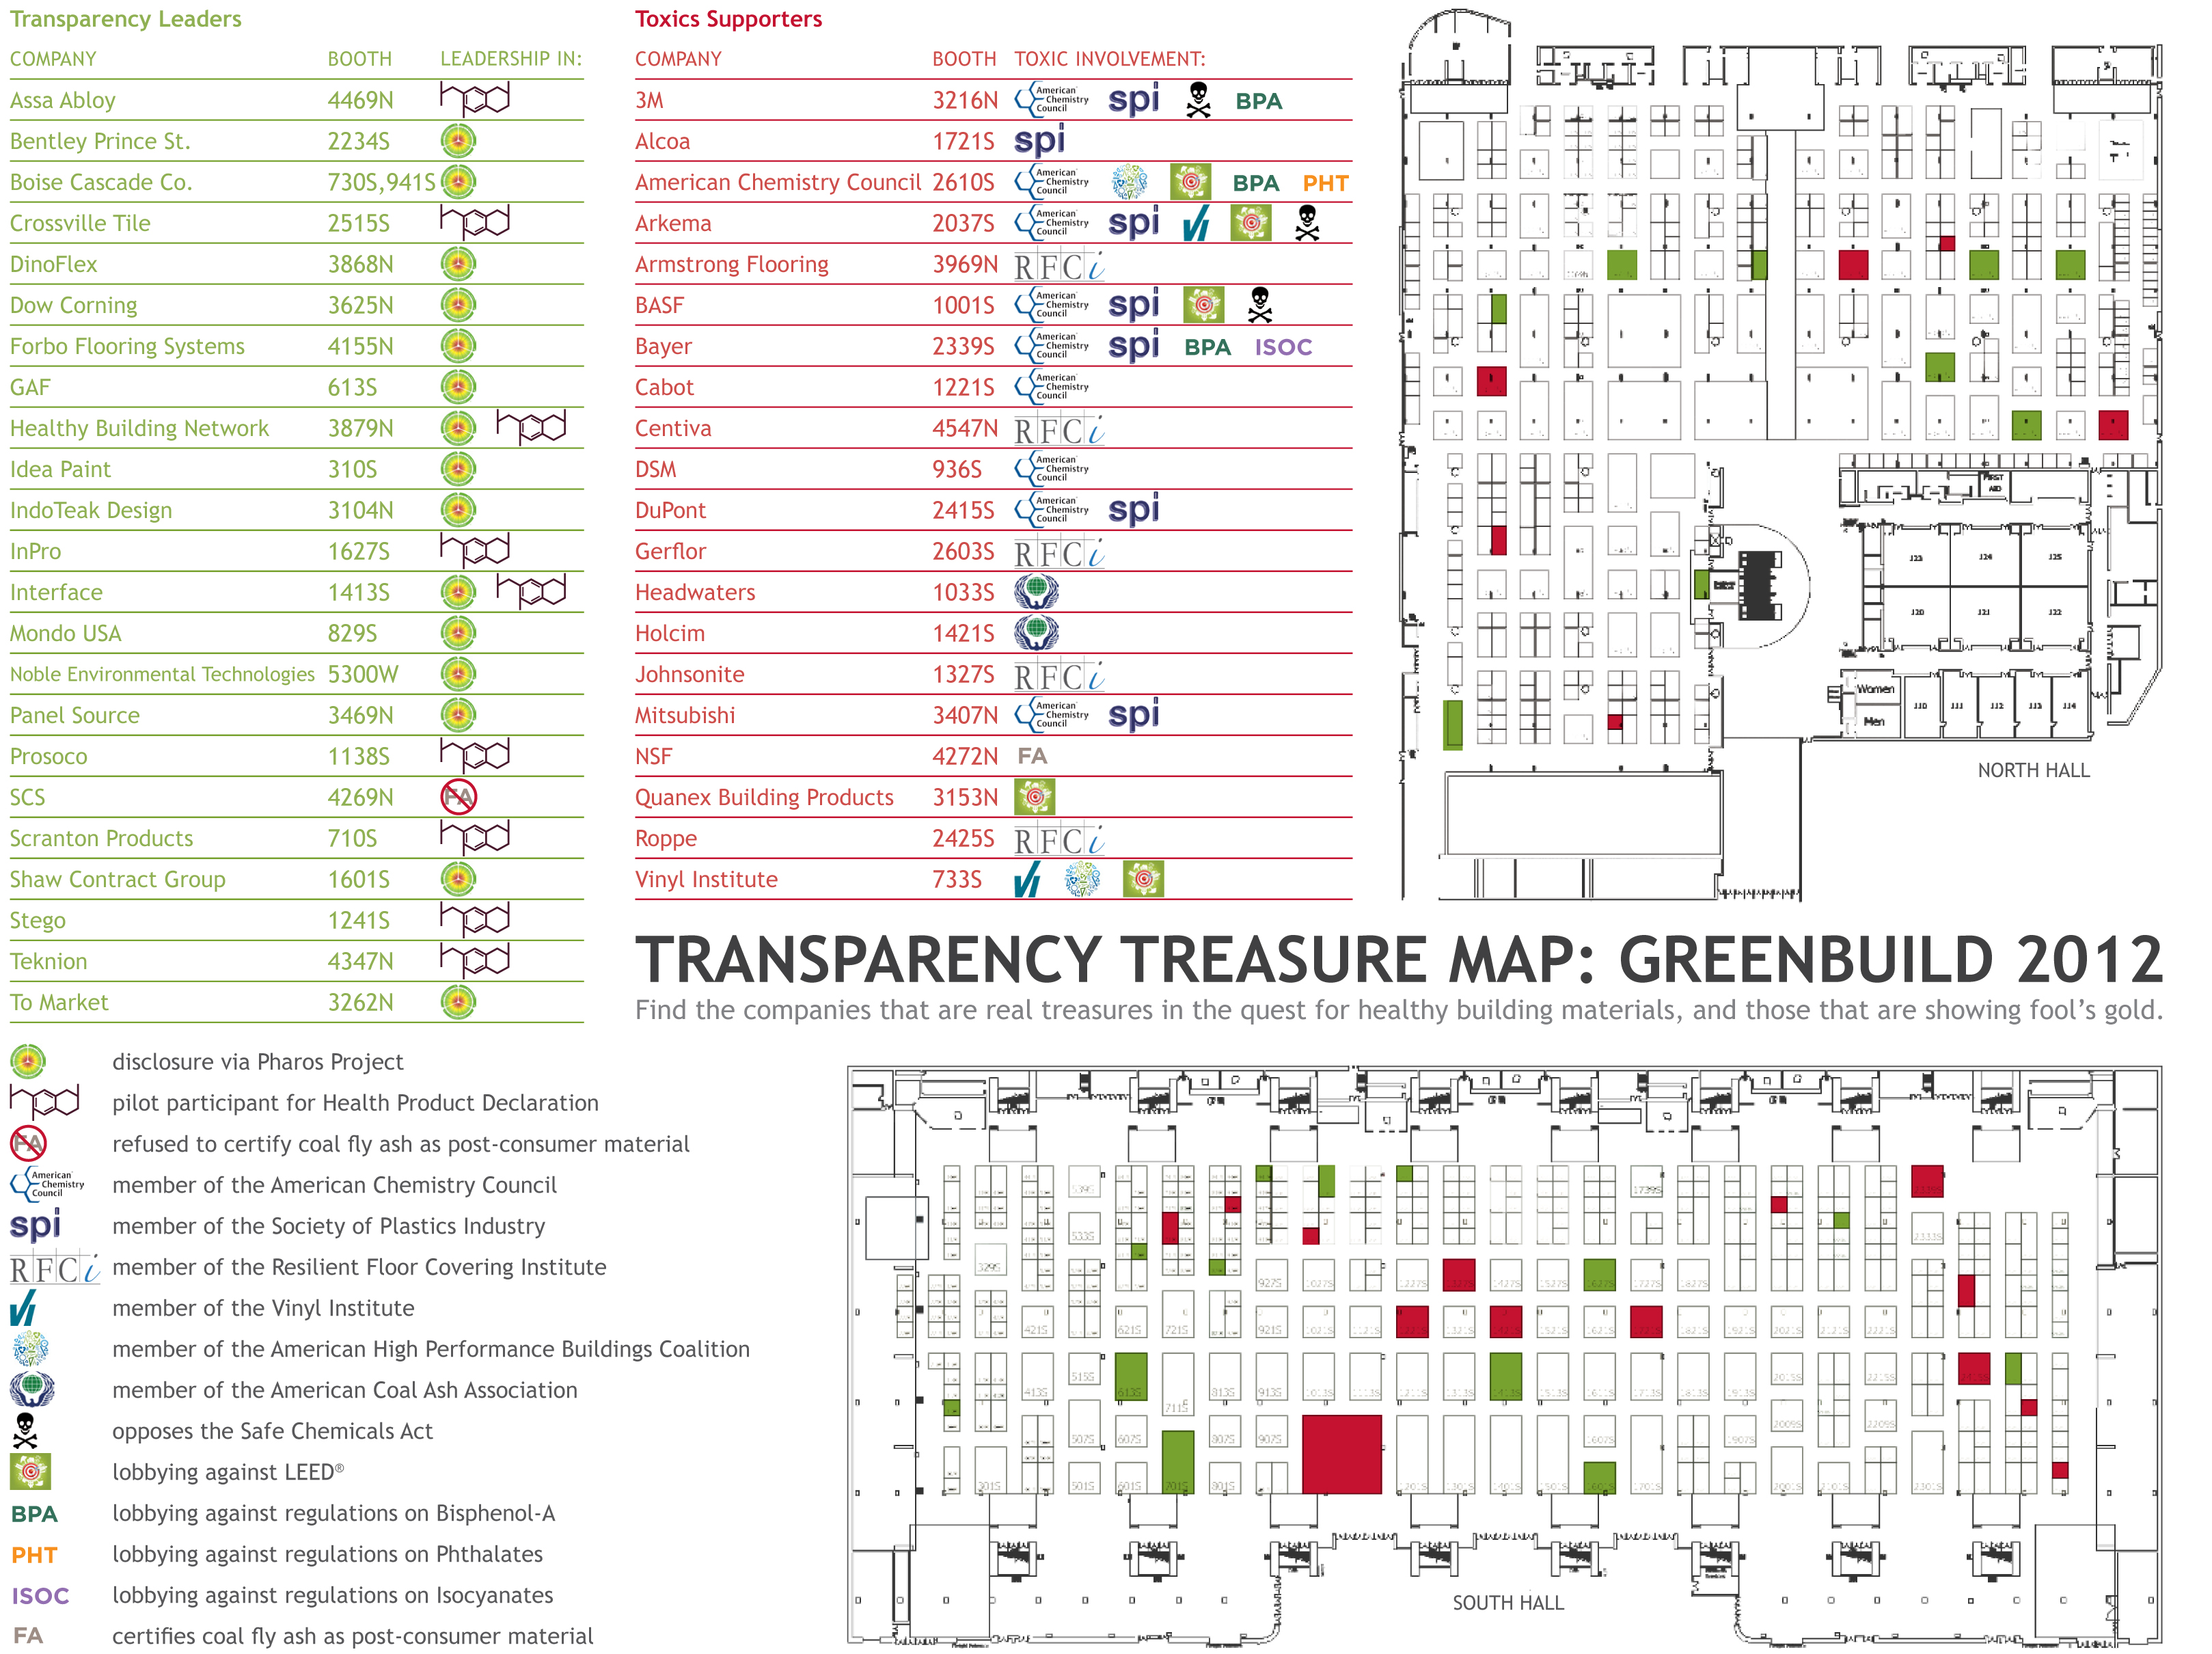 Greenbuild 2012 Transparency Map